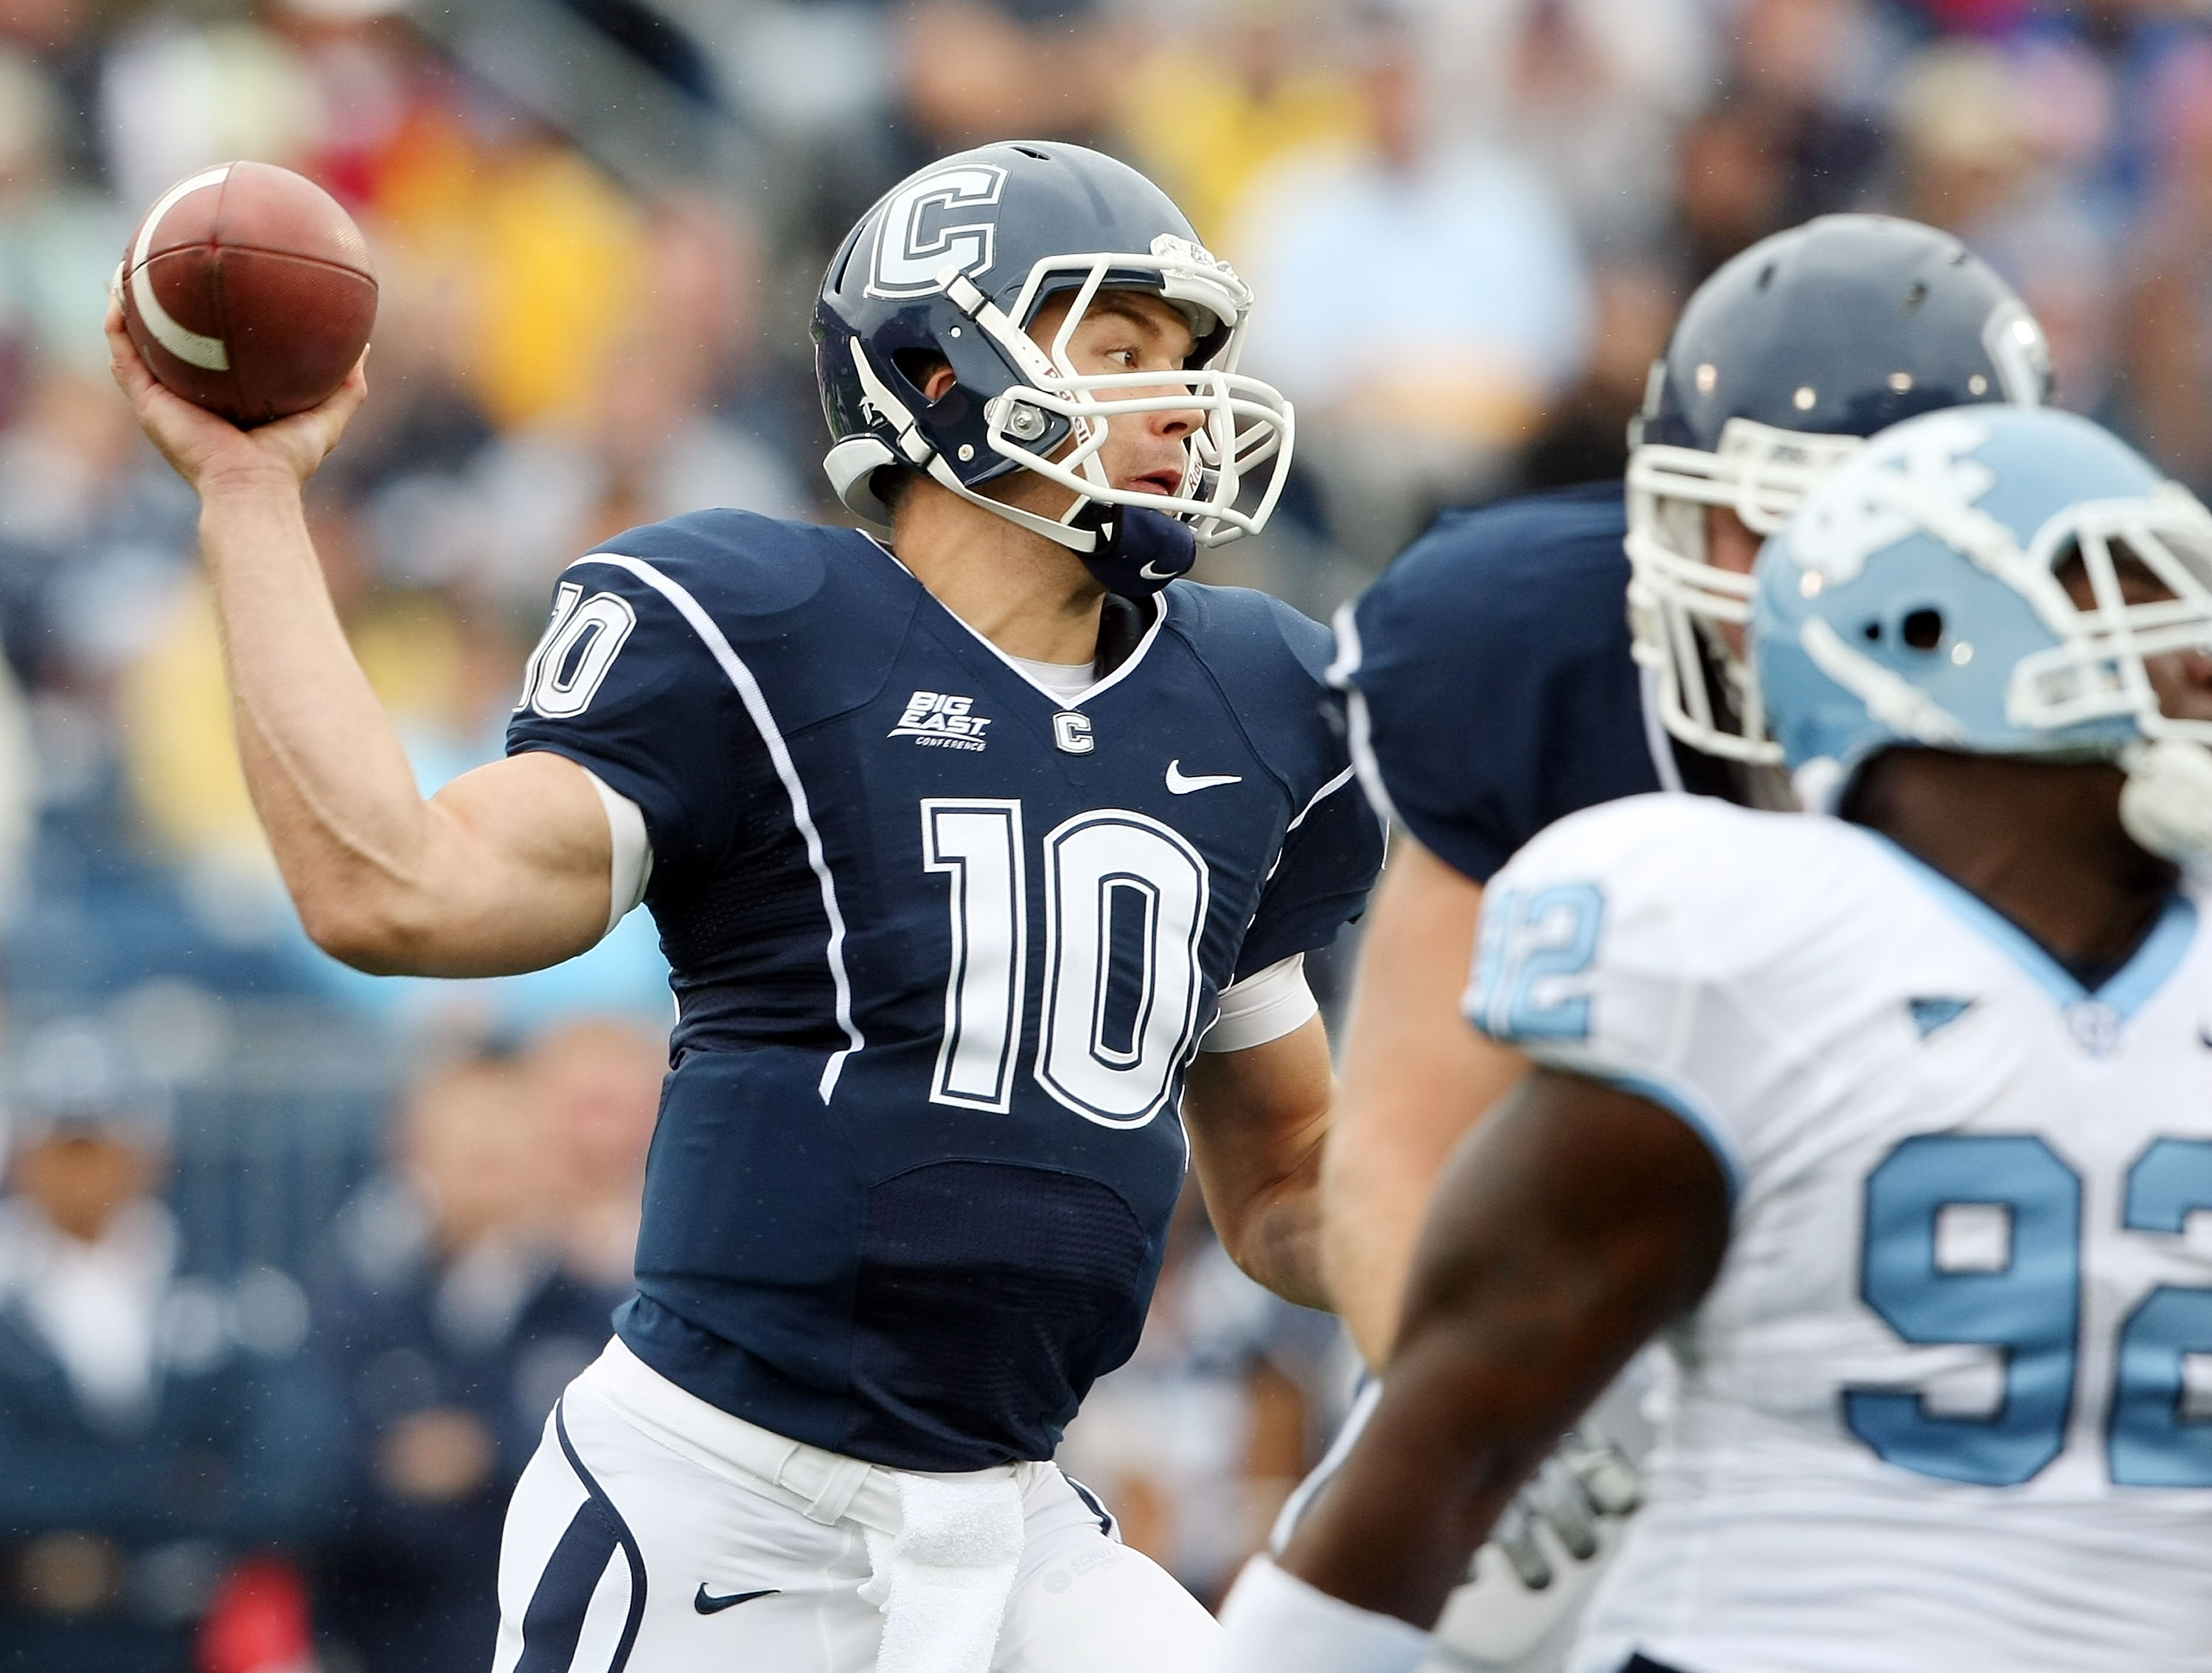 EAST HARTFORD, CT - SEPTEMBER 12:  Zach Frazer #10 of the Connecticut Huskies tries to pass the ball in the first quarter against the North Carolinia Tar Heels on September 12, 2009 at Rentschler Field in East Hartford, Connecticut.  (Photo by Elsa/Getty